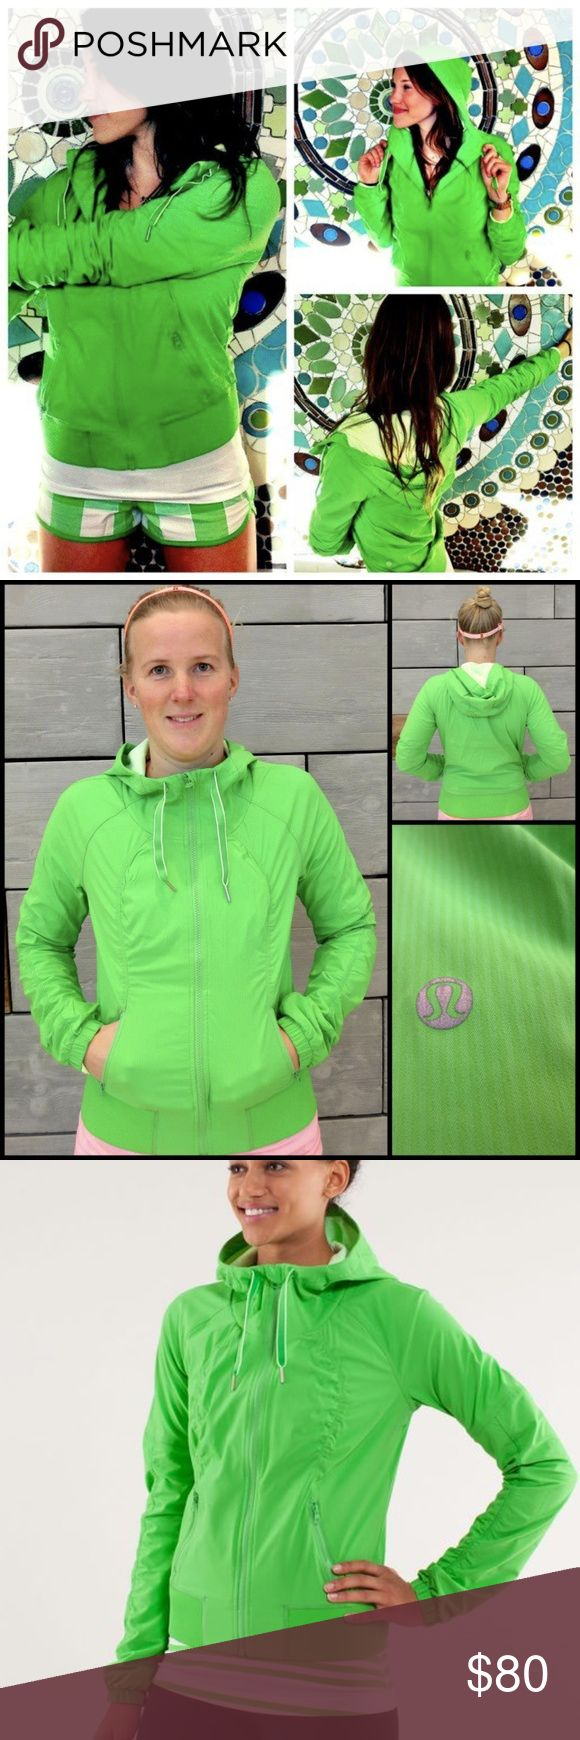 Lululemon Studio to Street Jacket Frond Green Lululemon Studio to Street Jacket Frond Green Hoodie Zip Coat Flux Define Sz 6  Life can move quickly and, when it does, we like to be prepared. We designed this jacket to have our back when we're racing between home, work and our practice. To protect us from Spring showers, we added an oversized hood and coated the Swift fabric with a DWR (Durable Water Repellant) finish. lululemon athletica Jackets & Coats